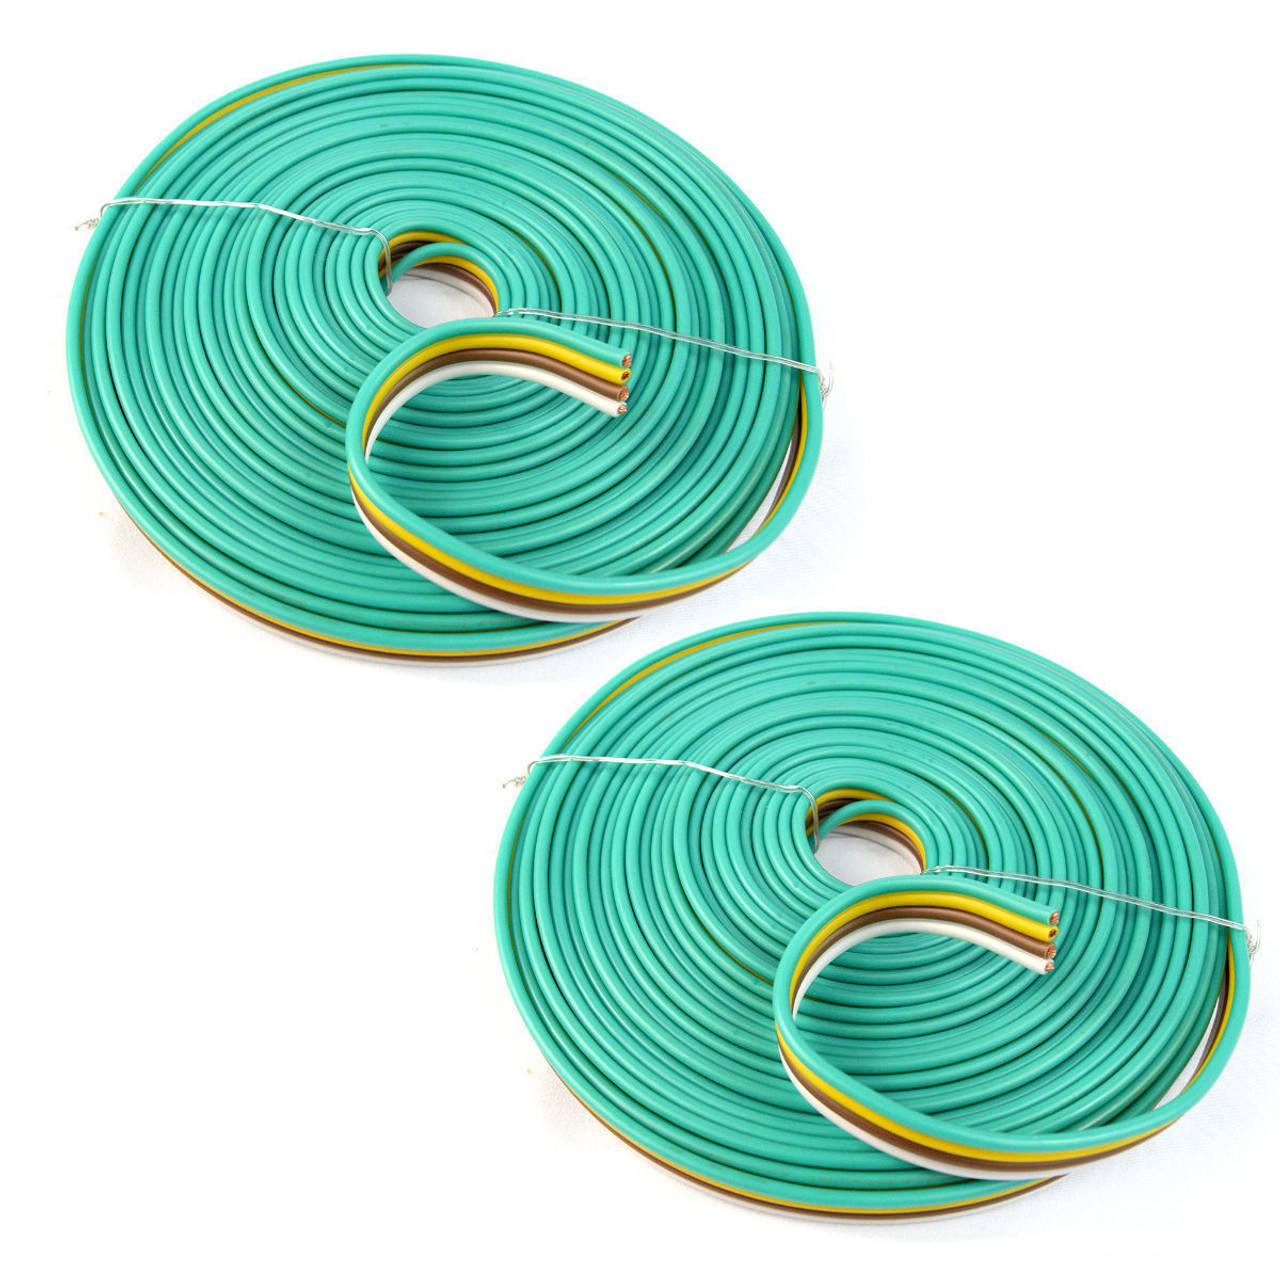 hight resolution of 2 rolls 14 gauge 25 feet flat trailer light cable wiring harness copper wire